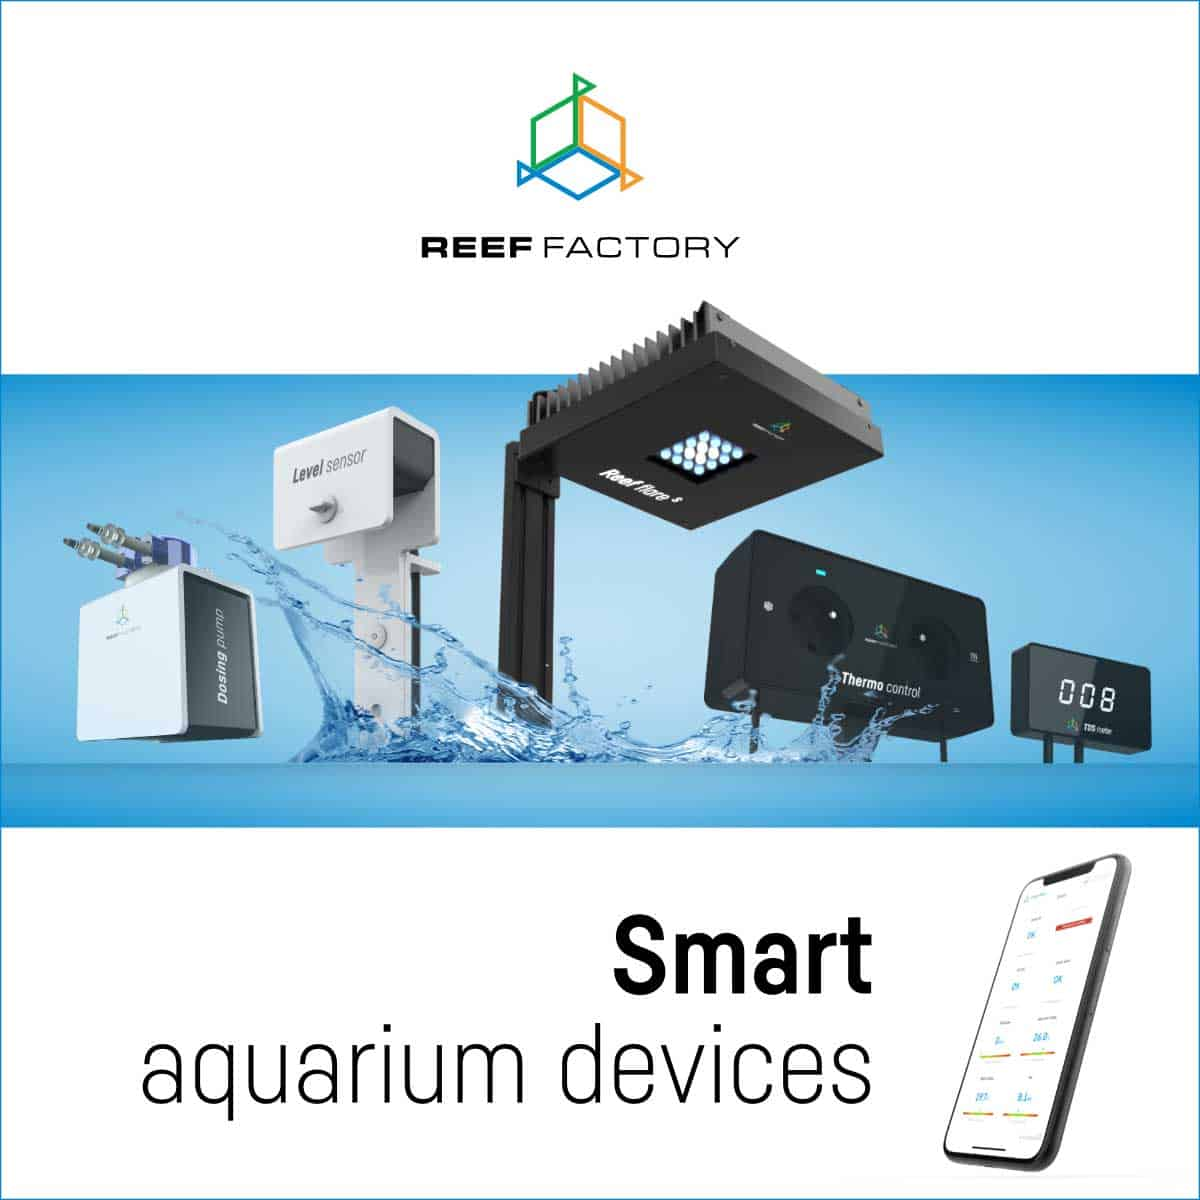 Reef Factory - Smart aquarium devices